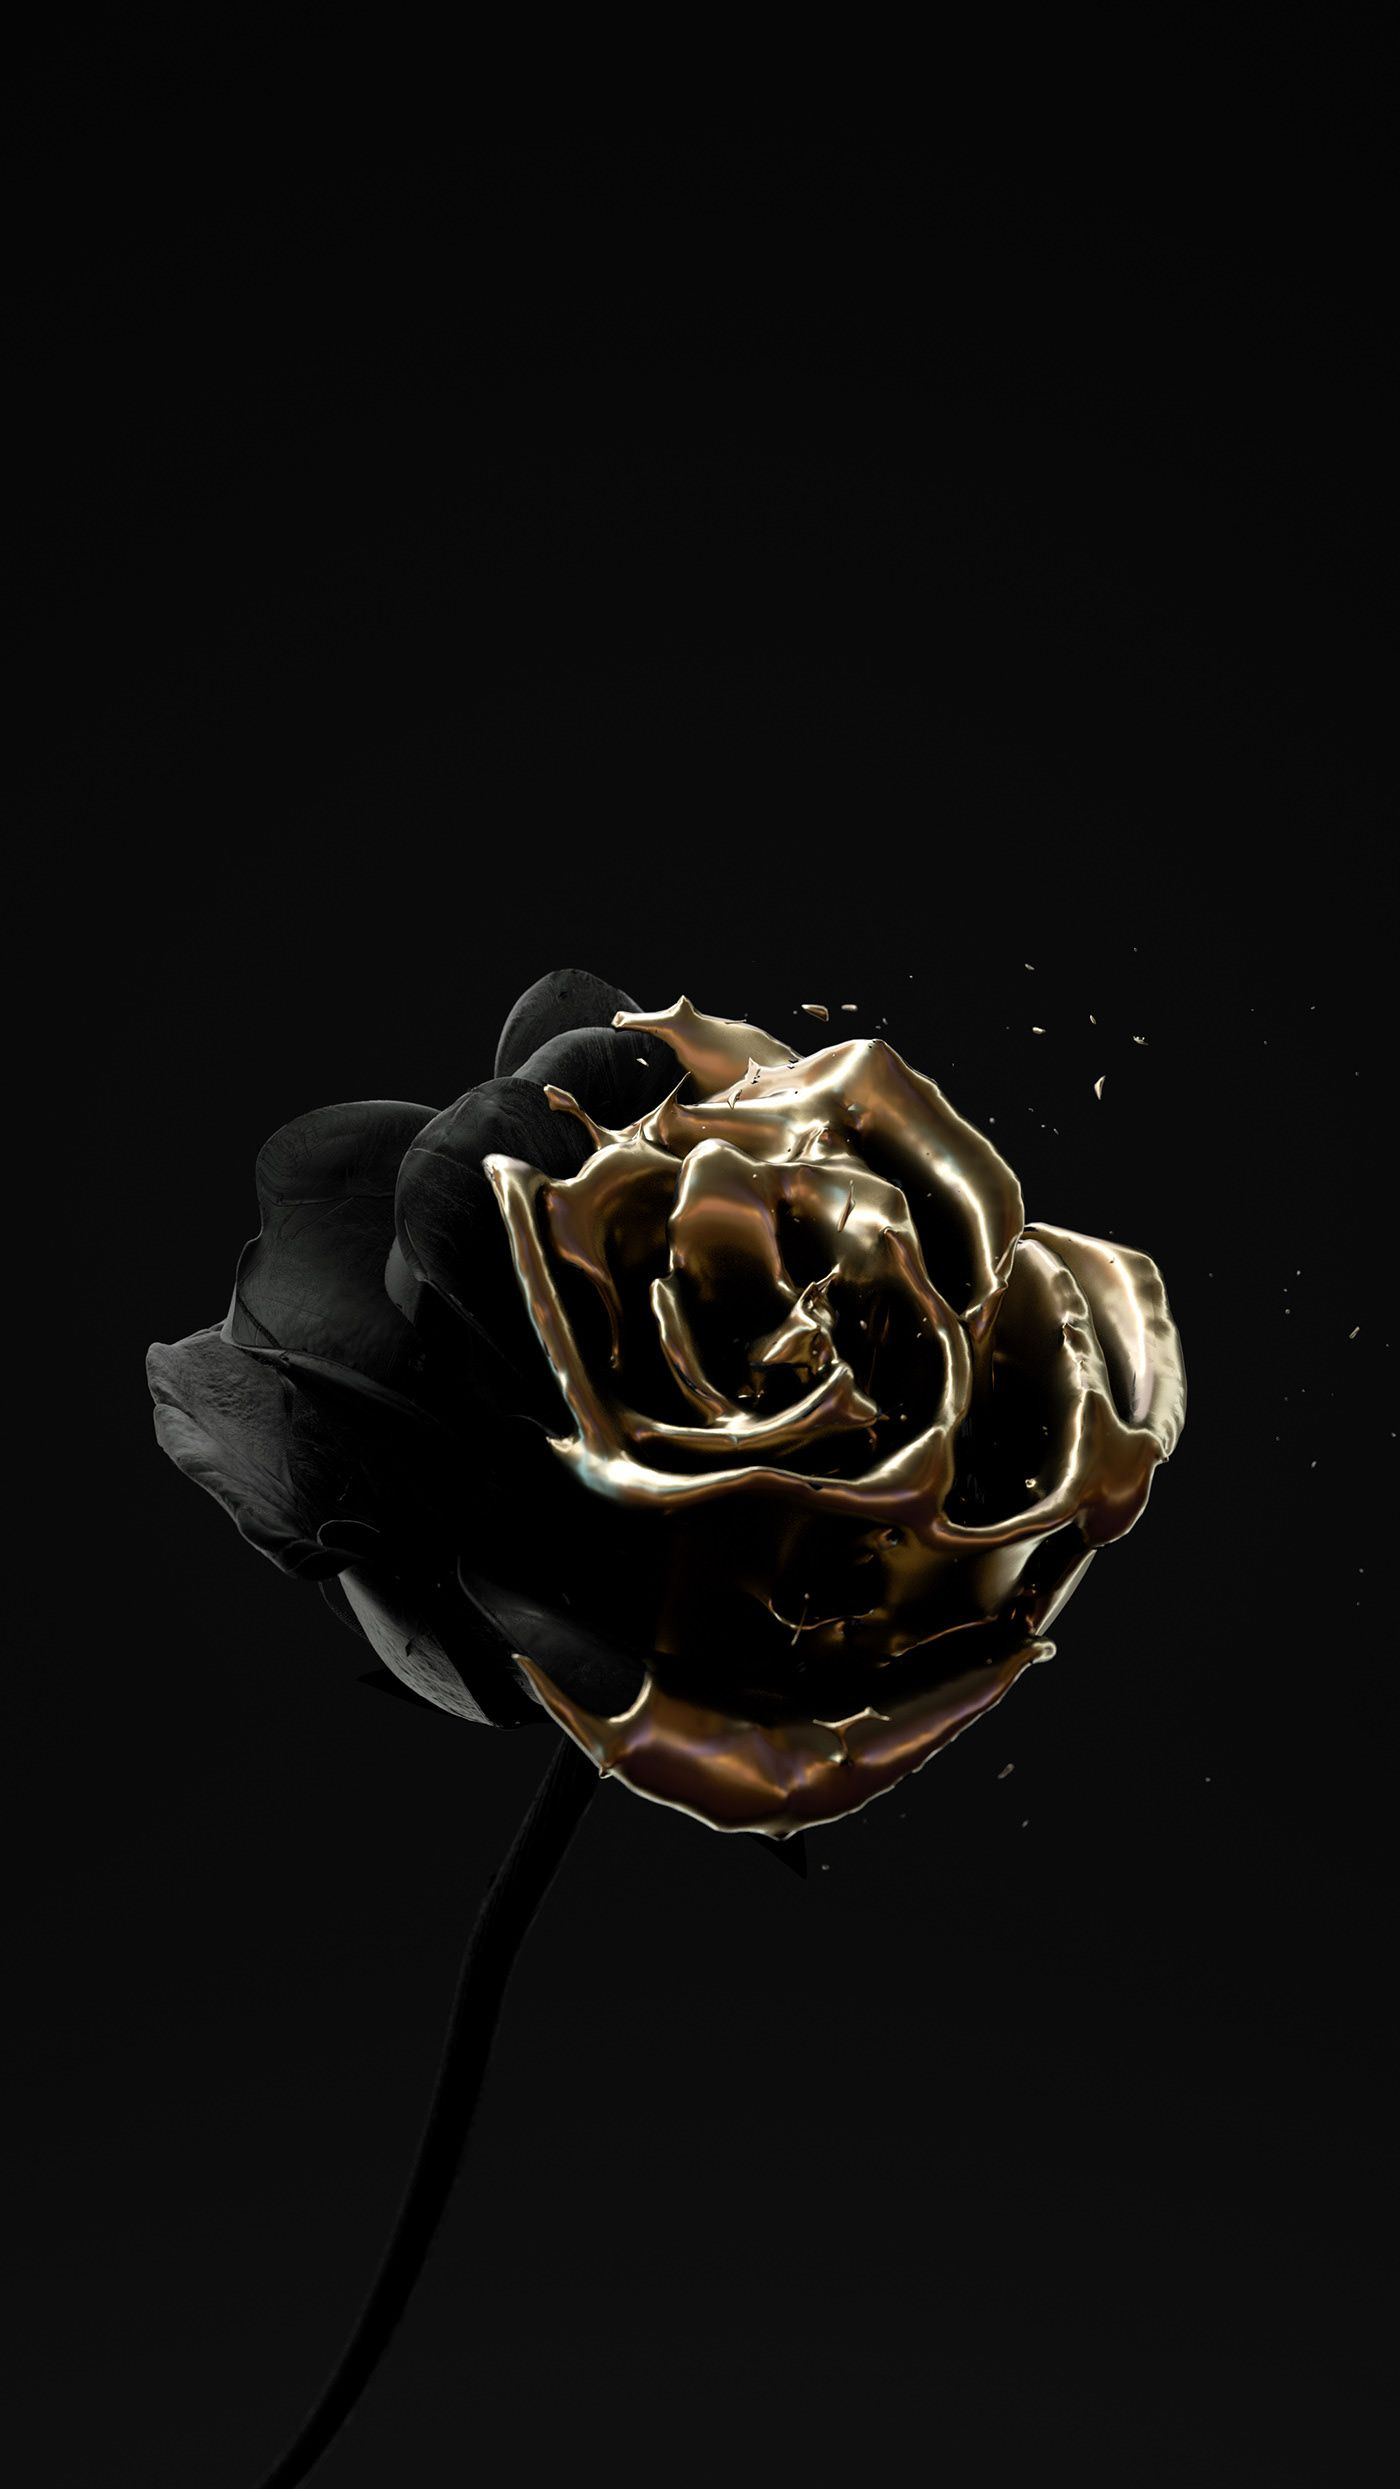 Roses Are Dead Vol 4 Black And Gold On Behance Black And Gold Aesthetic Black Aesthetic Wallpaper Gold Aesthetic